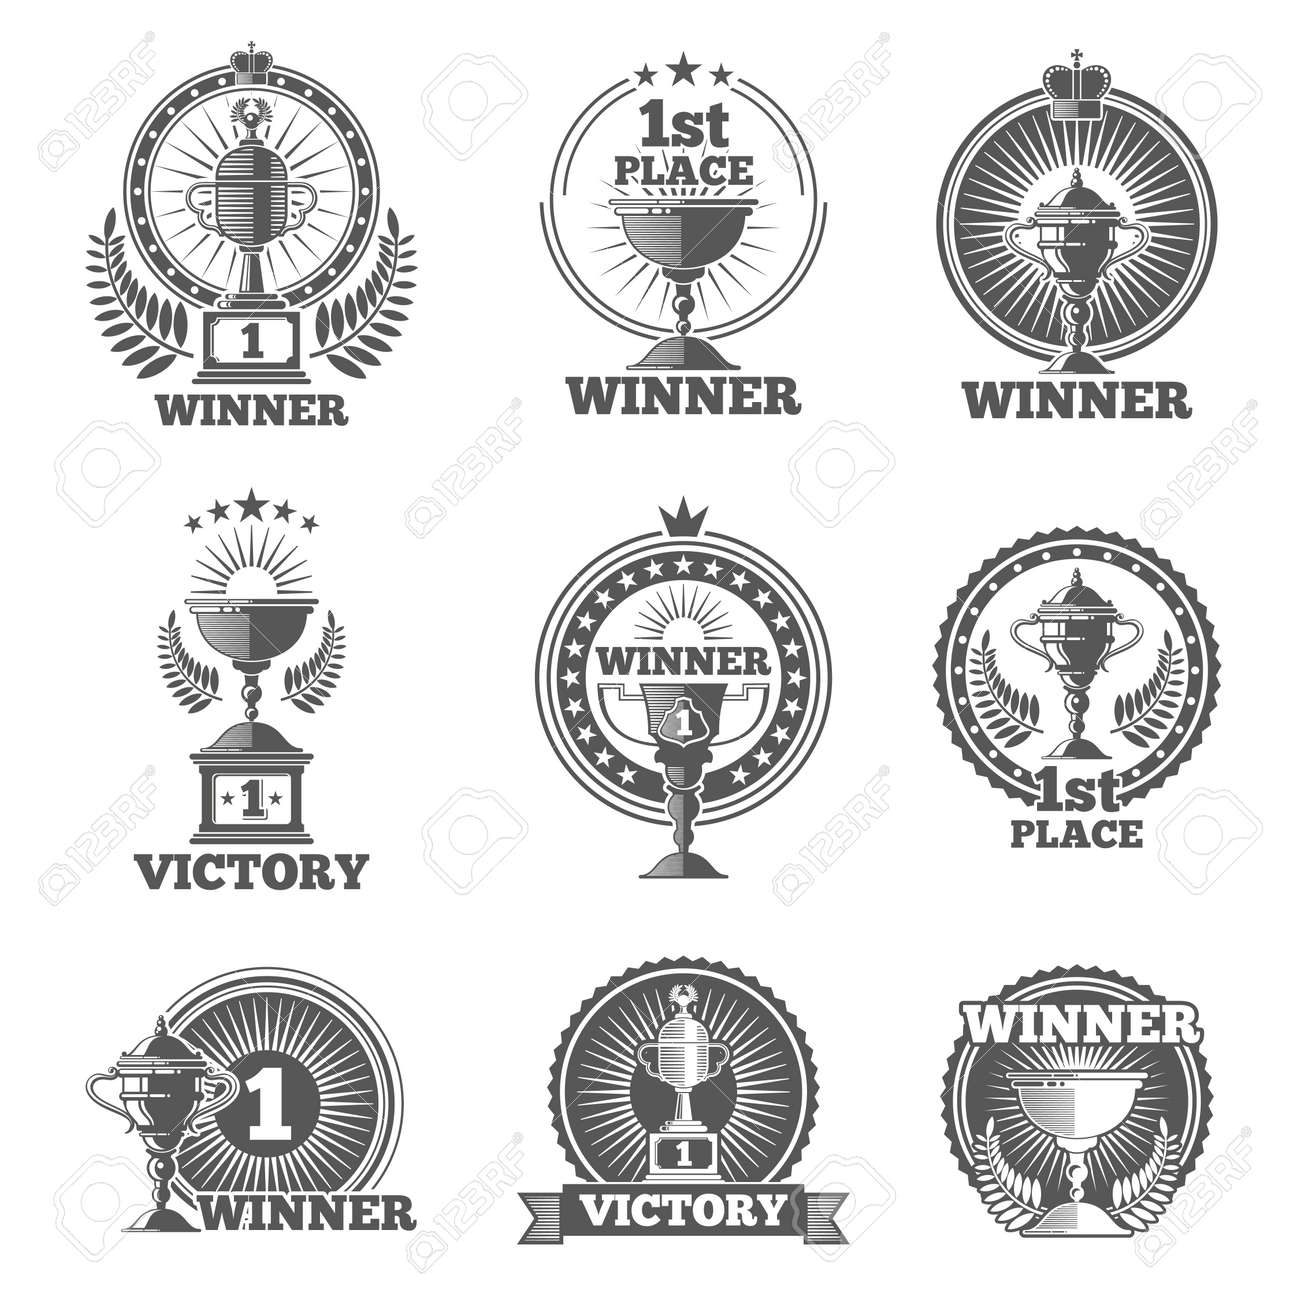 Victory trophies and awards vector logos, badges, emblems. Win cup sport, champion stamp, vector illustration - 166800679